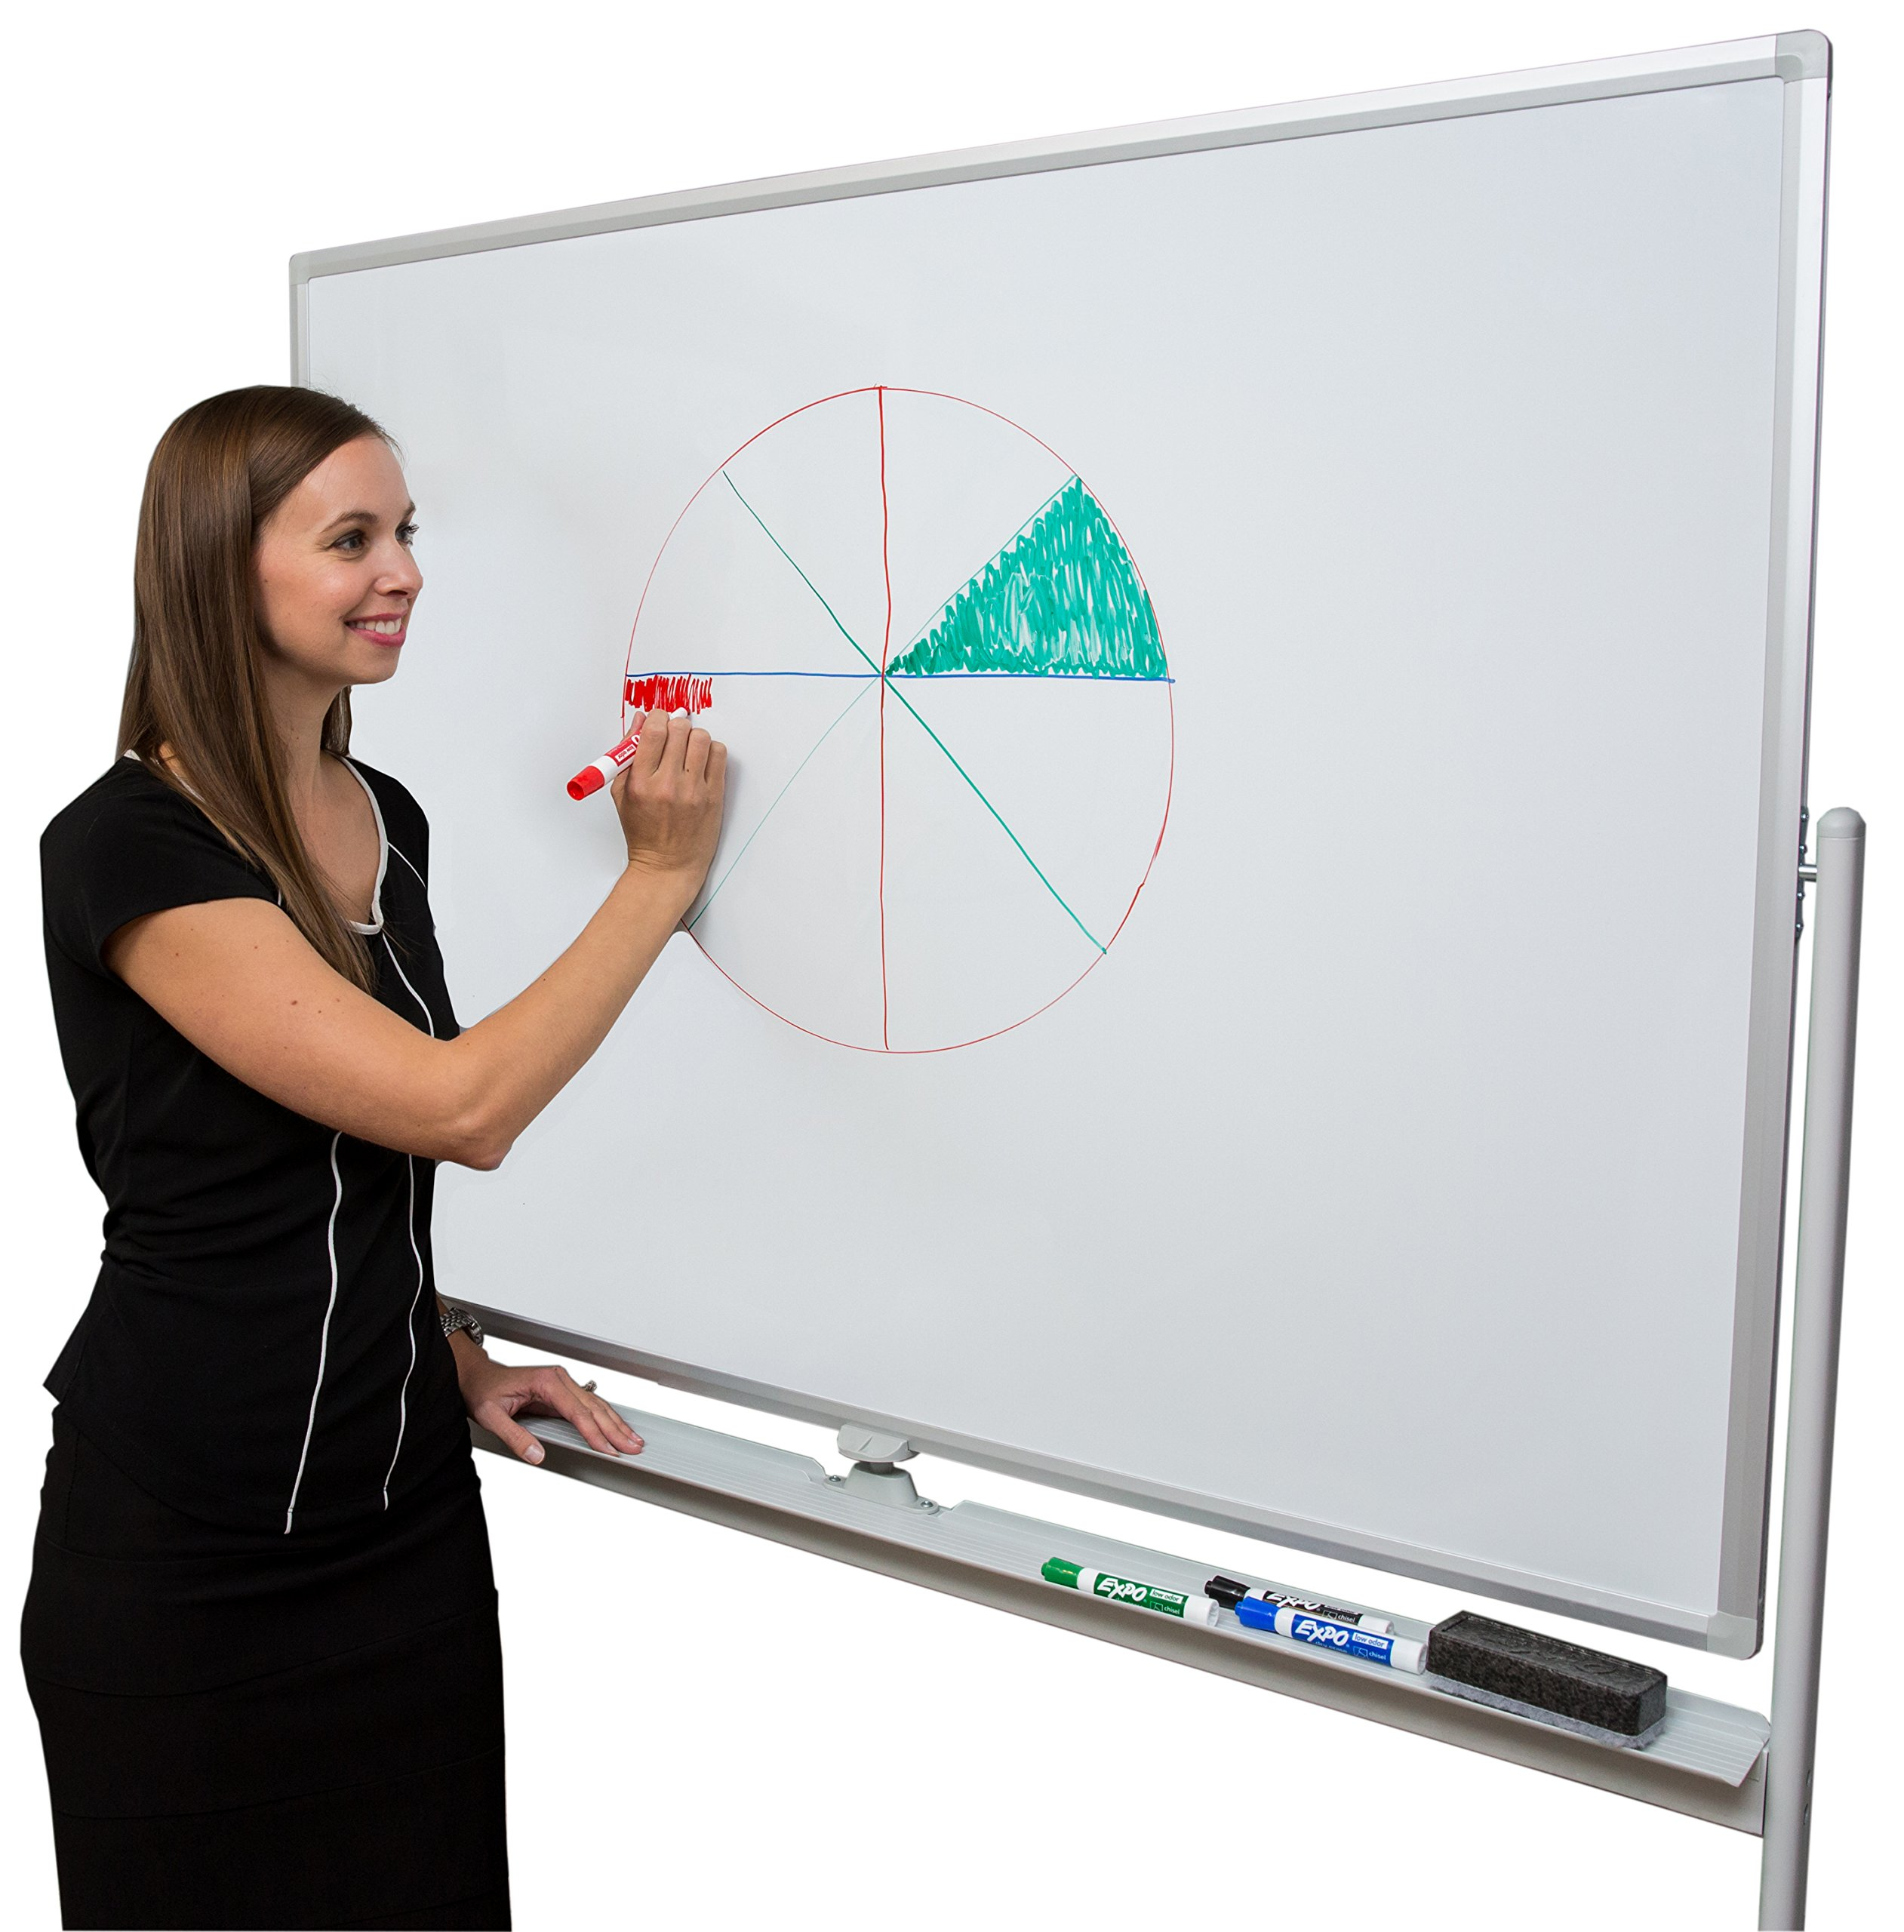 Large Whiteboard Rolling On A Stand 6' x 4' | Mobile Double-Sided Magnetic Giant Dry Erase White Board 70'' x 35'' for Markers & Magnets | Standing Portable Easel with Locking Wheels | By Sleekform by Sleekform